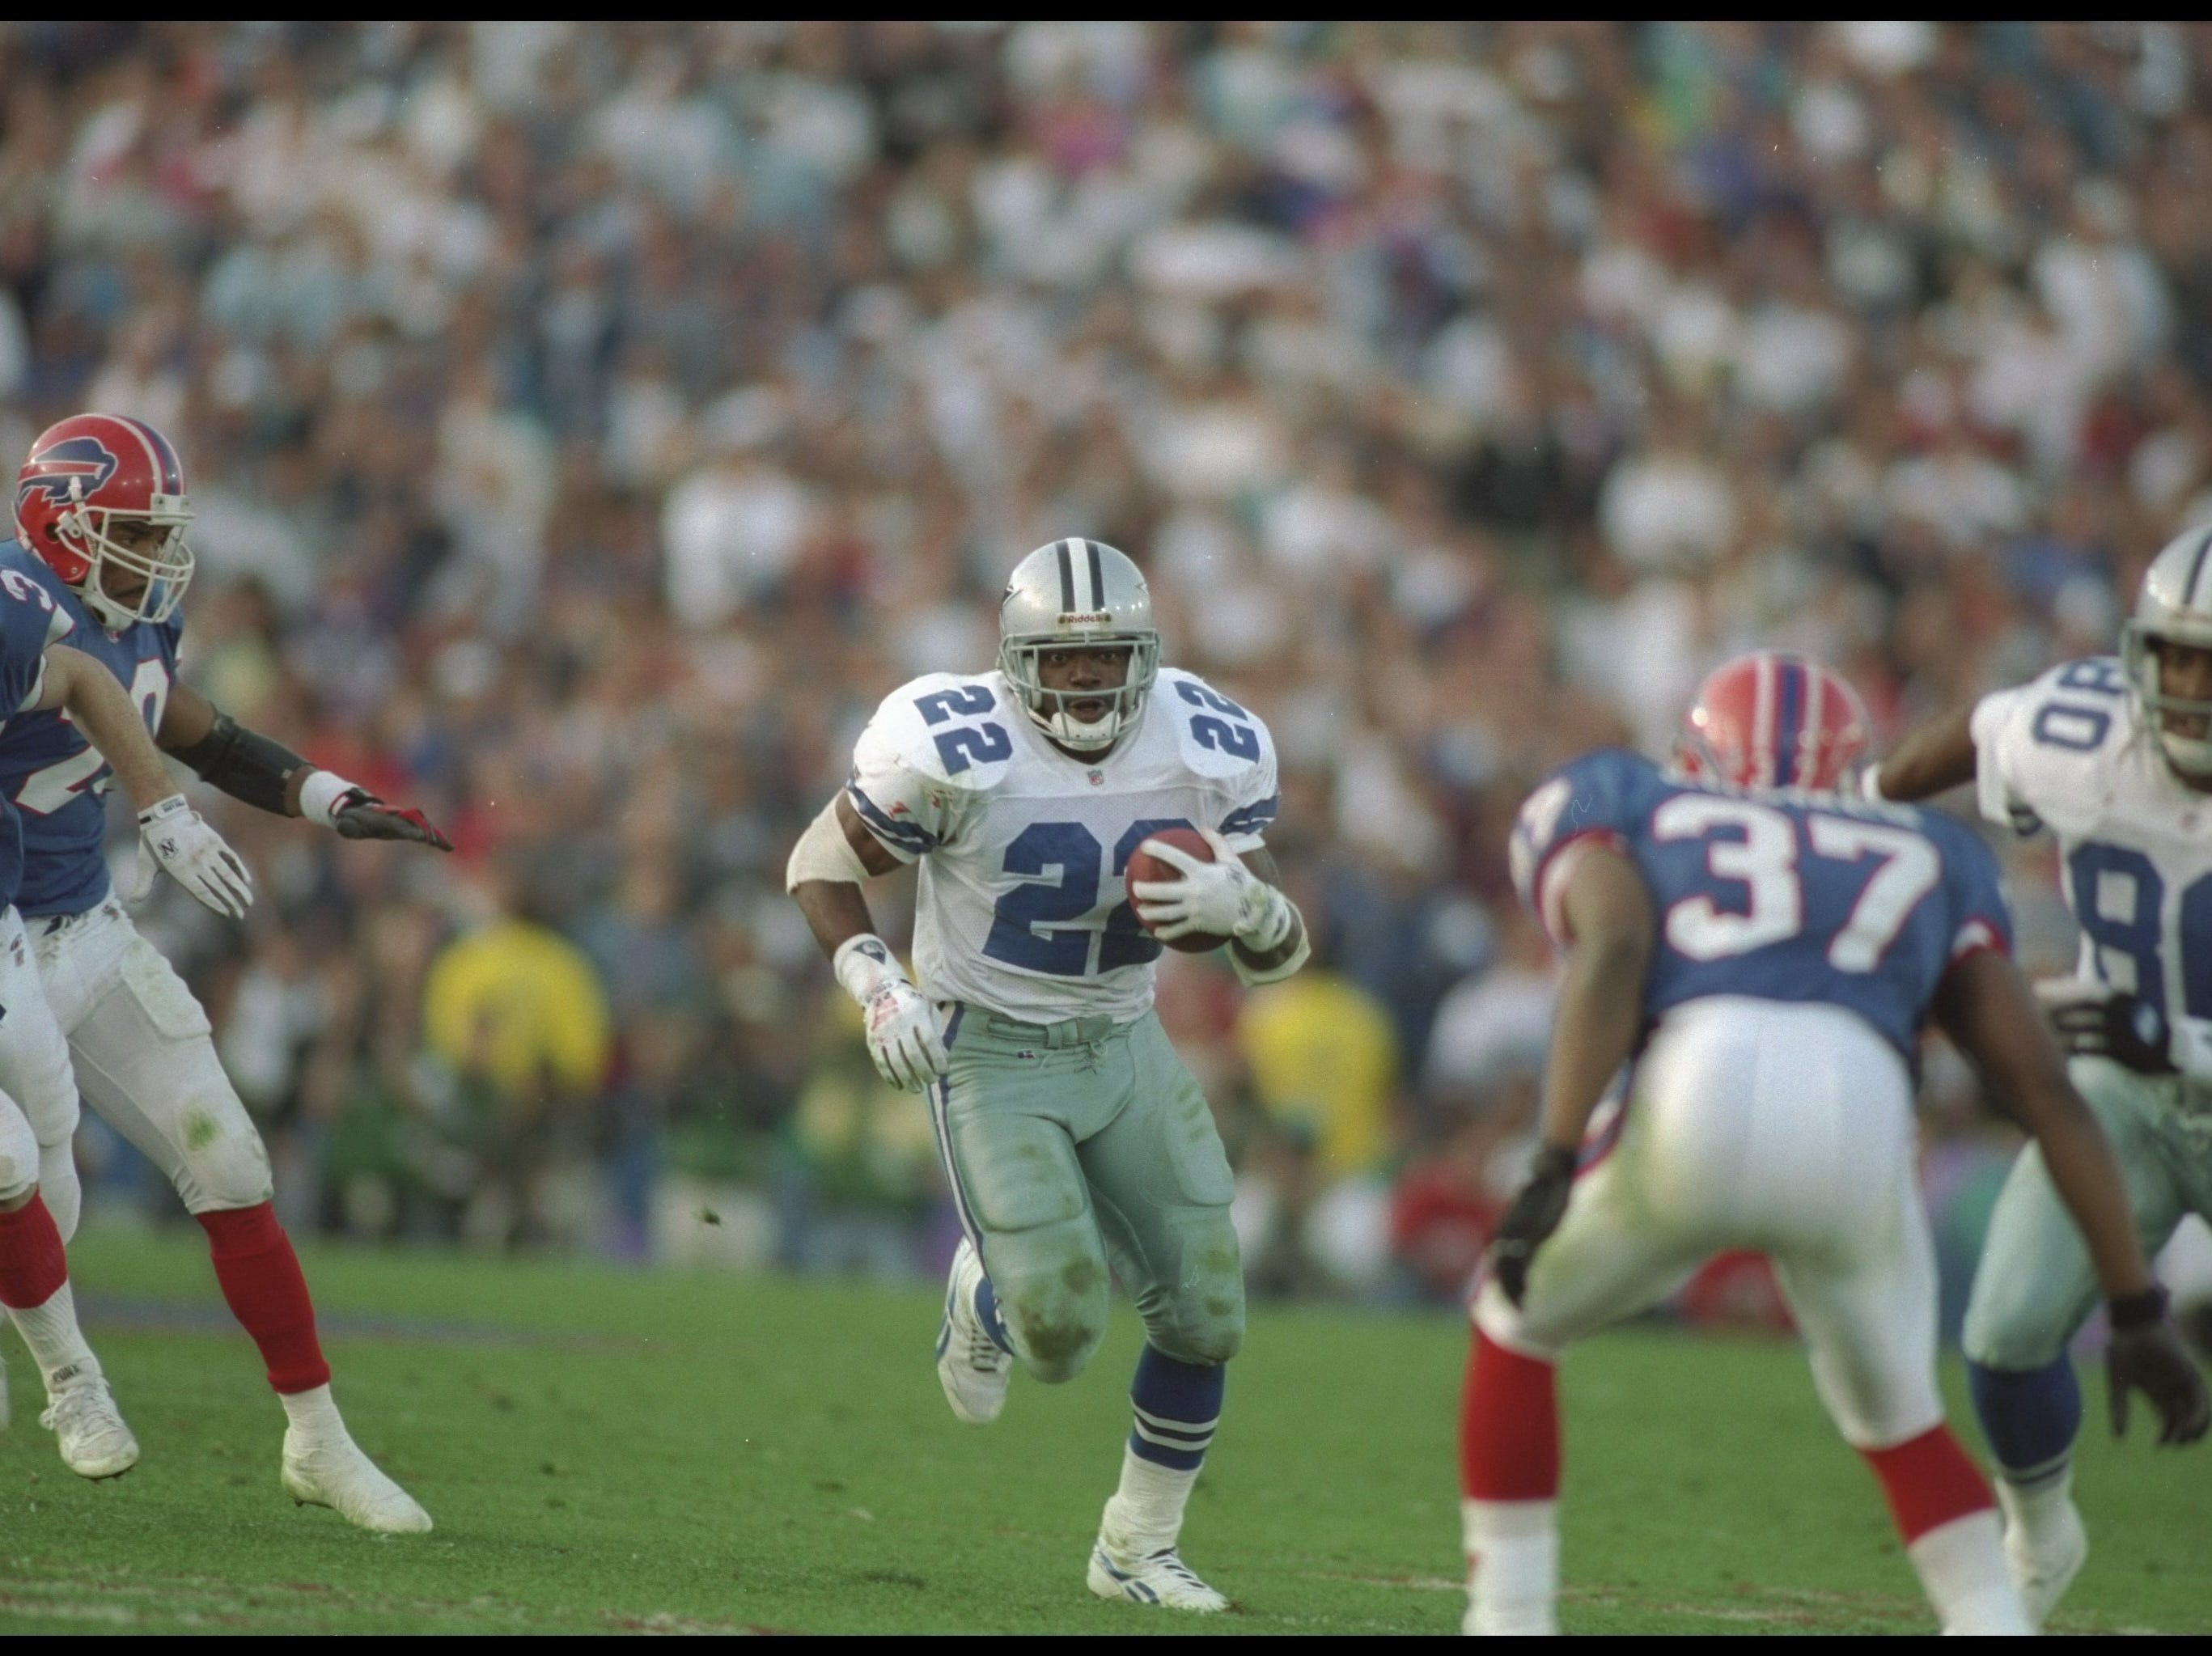 Running back Emmitt Smith of the Dallas Cowboys moves the ball during Super Bowl XXVII against the Buffalo Bills at the Rose Bowl in Pasadena, California.  The Cowboys won the game, 52-17. Mandatory Credit: Mike Powell  /Allsport